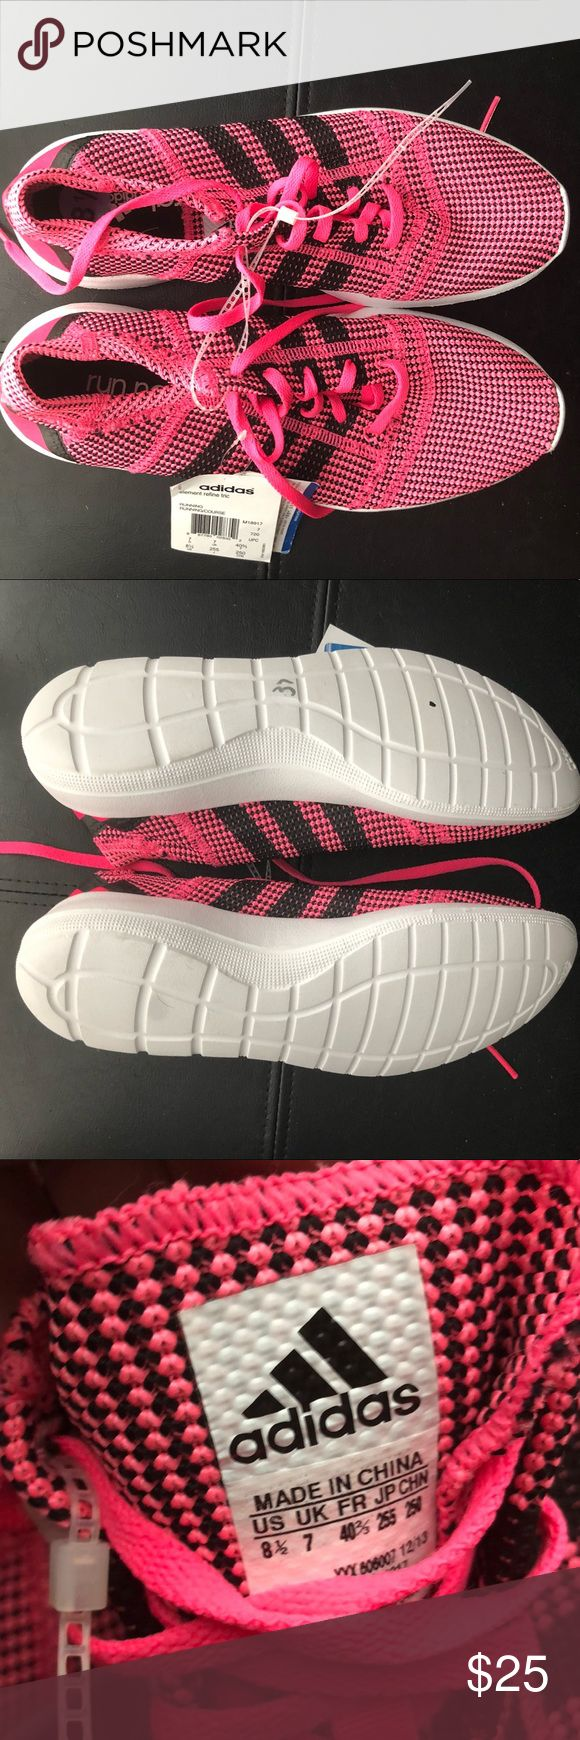 Adidas rum natural Hot pink and black adidas running shoe  Never worn, brand new with tags adidas Shoes